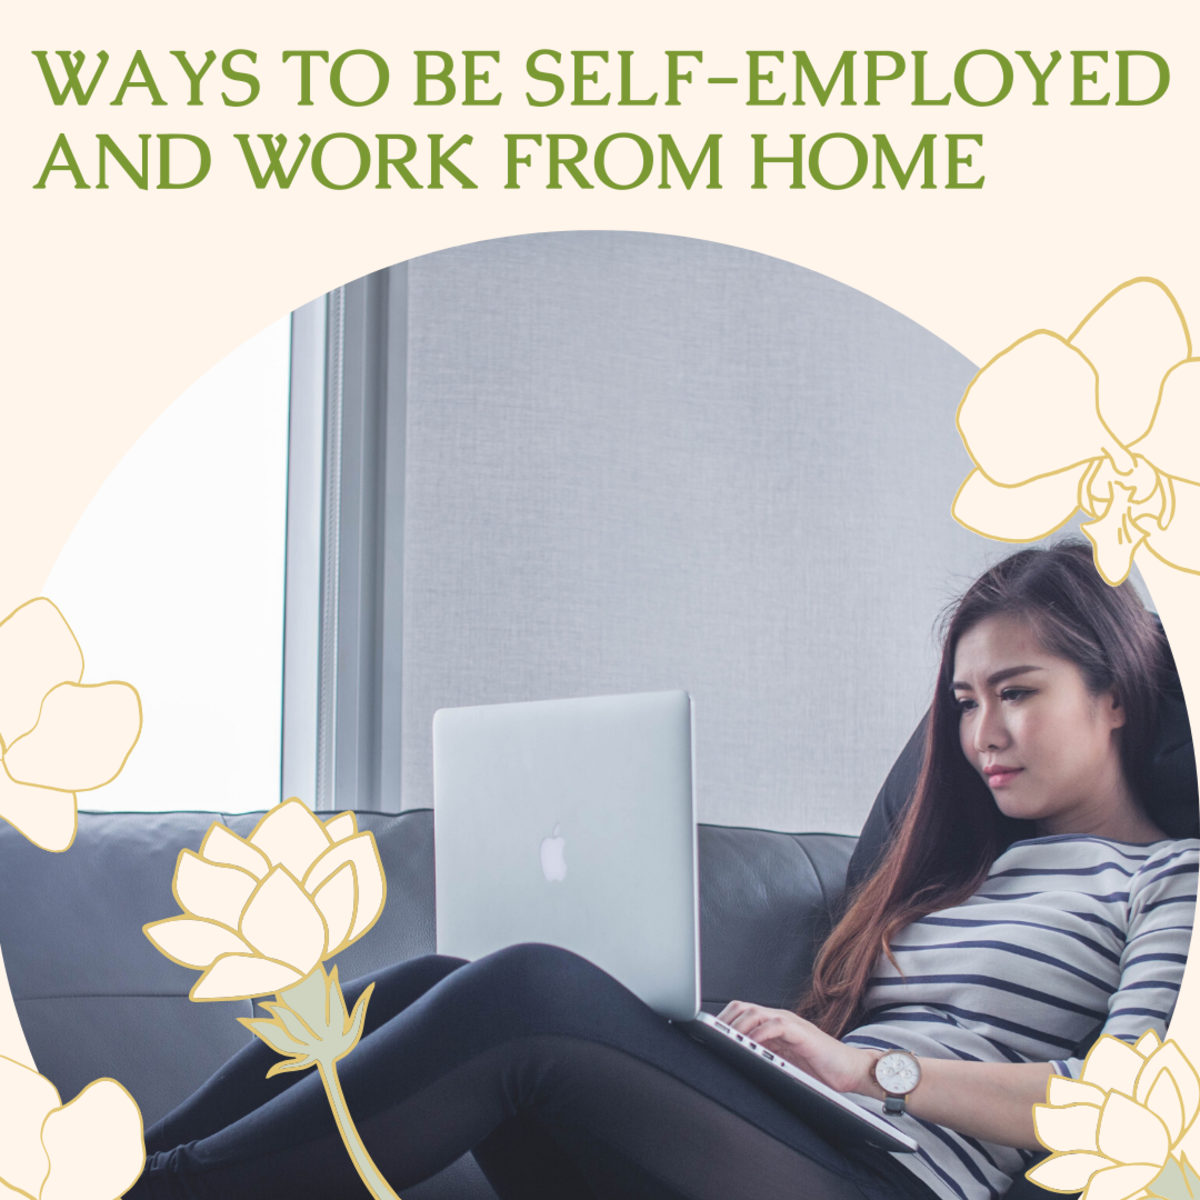 7 Ways to Be Self-Employed and Work From Home